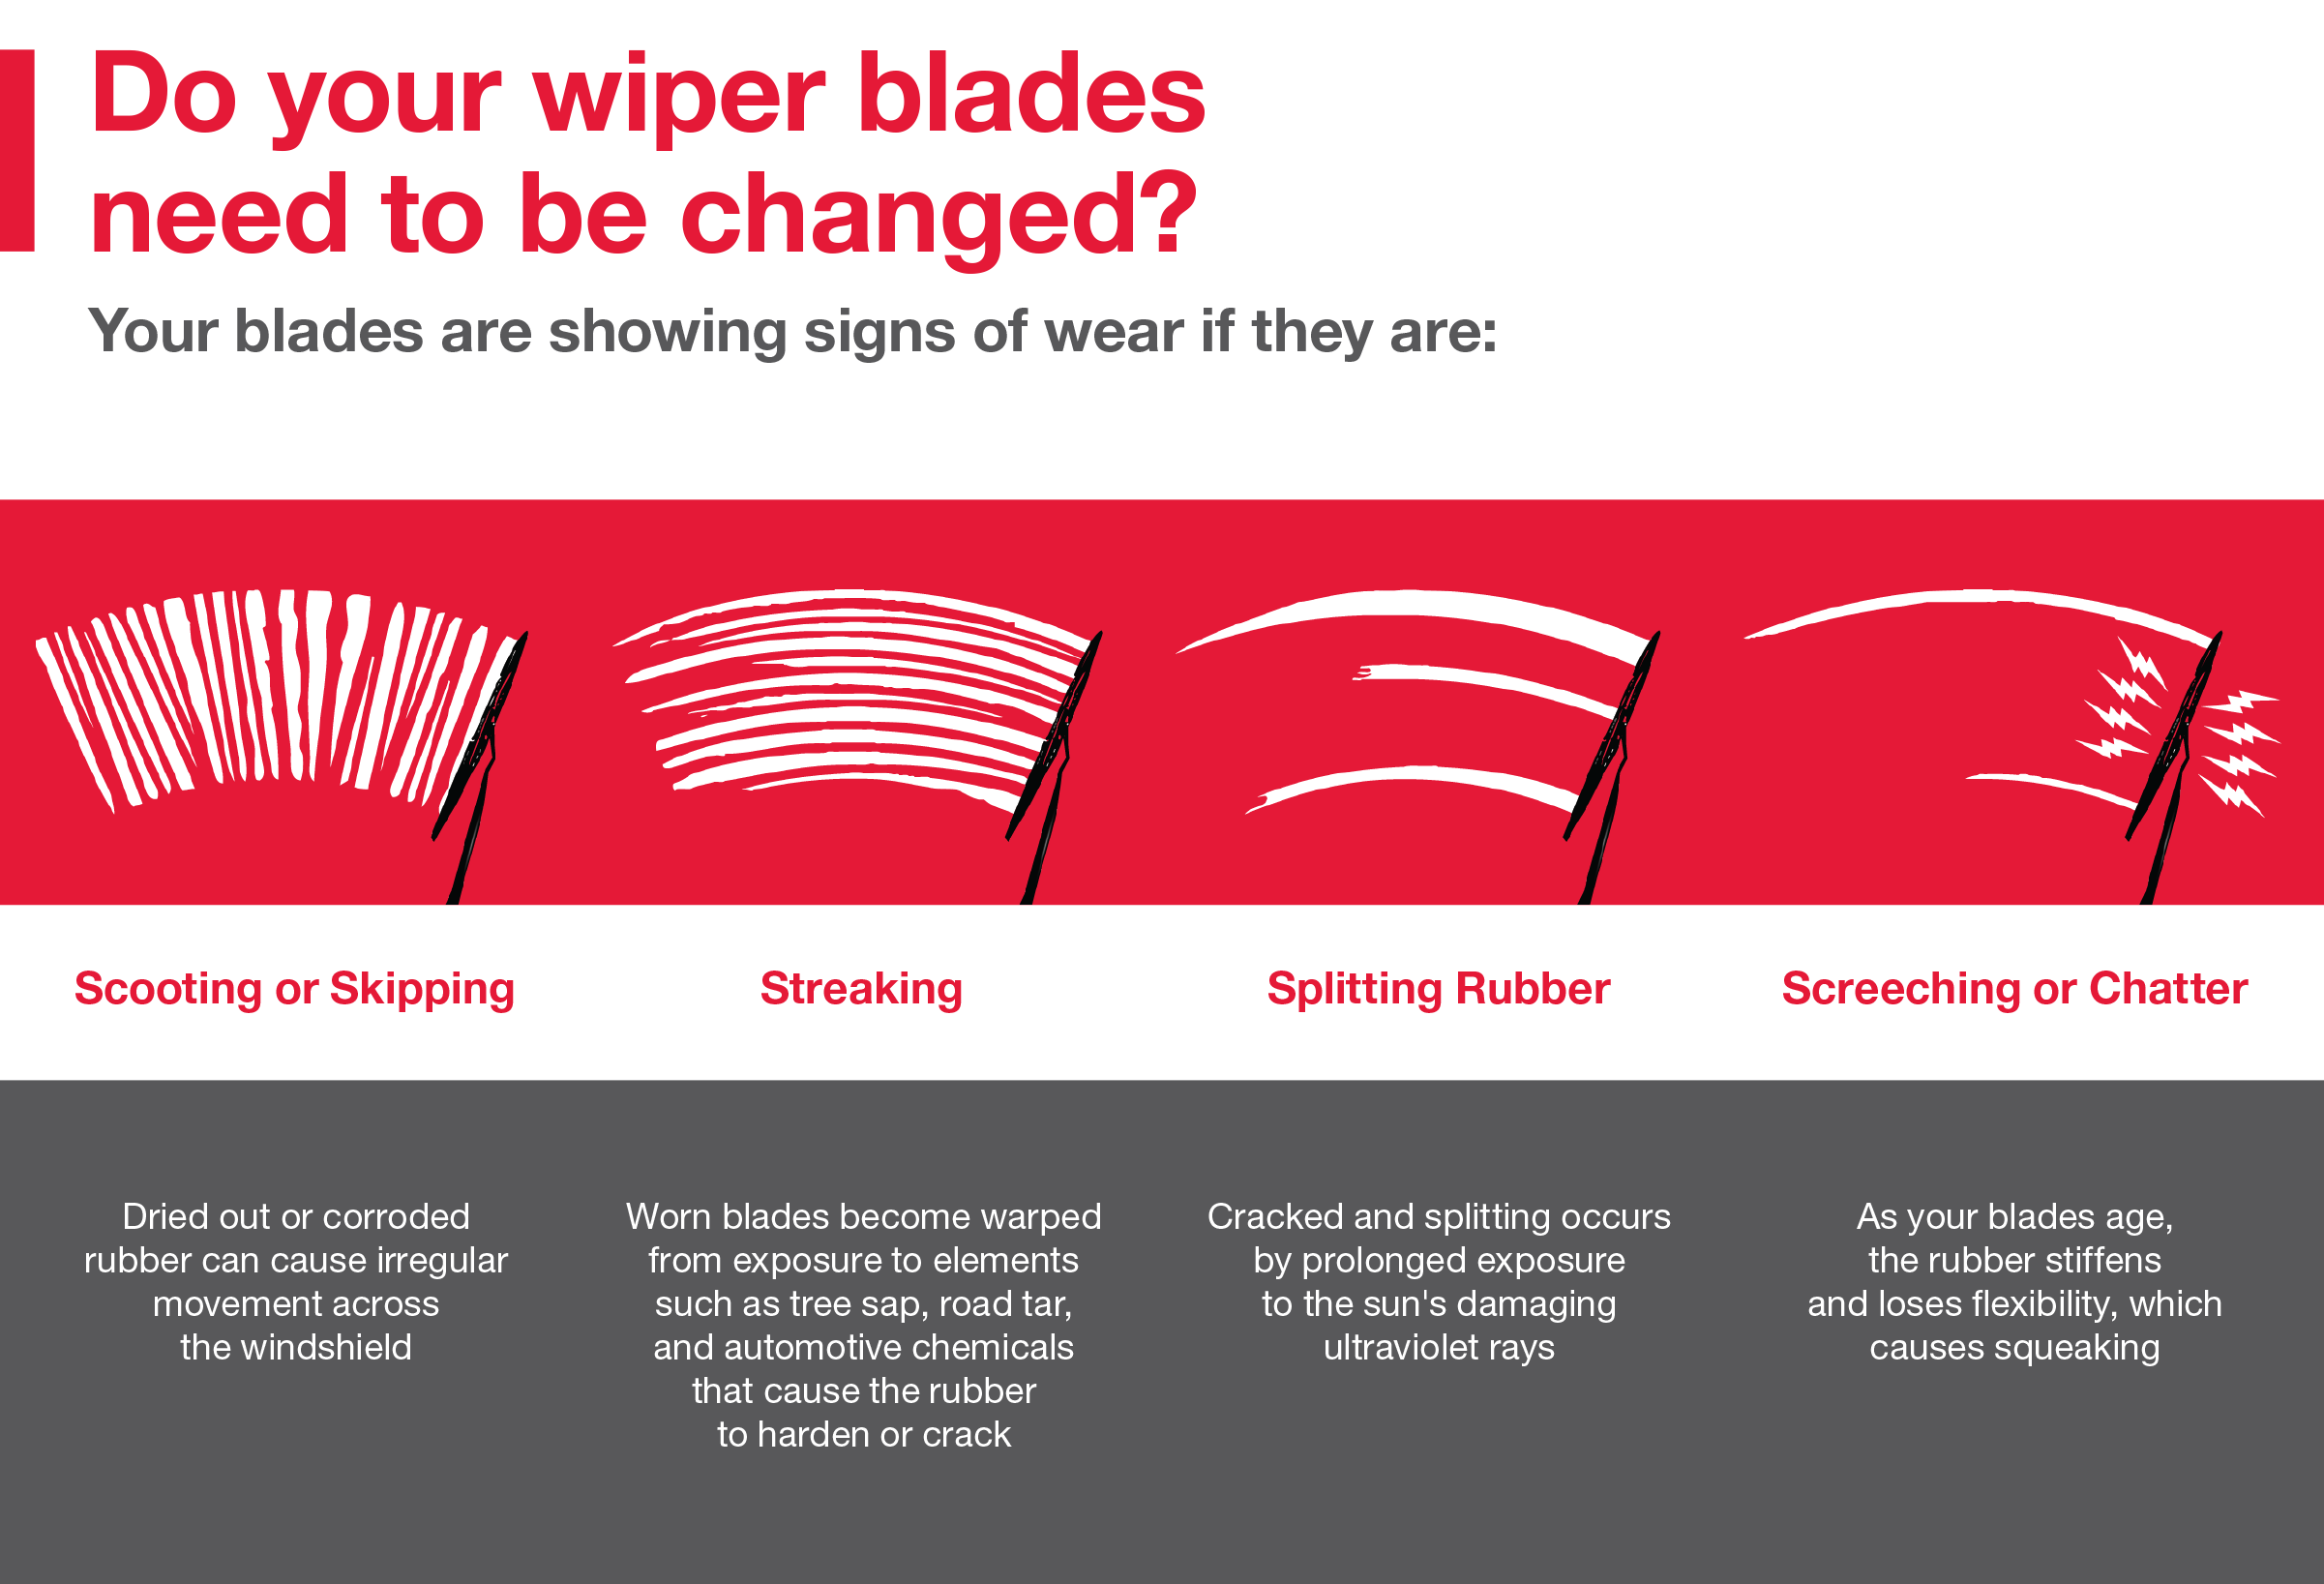 Do your wiper blades need to be changed? Call your local dealer for more info: (855) 389-6092